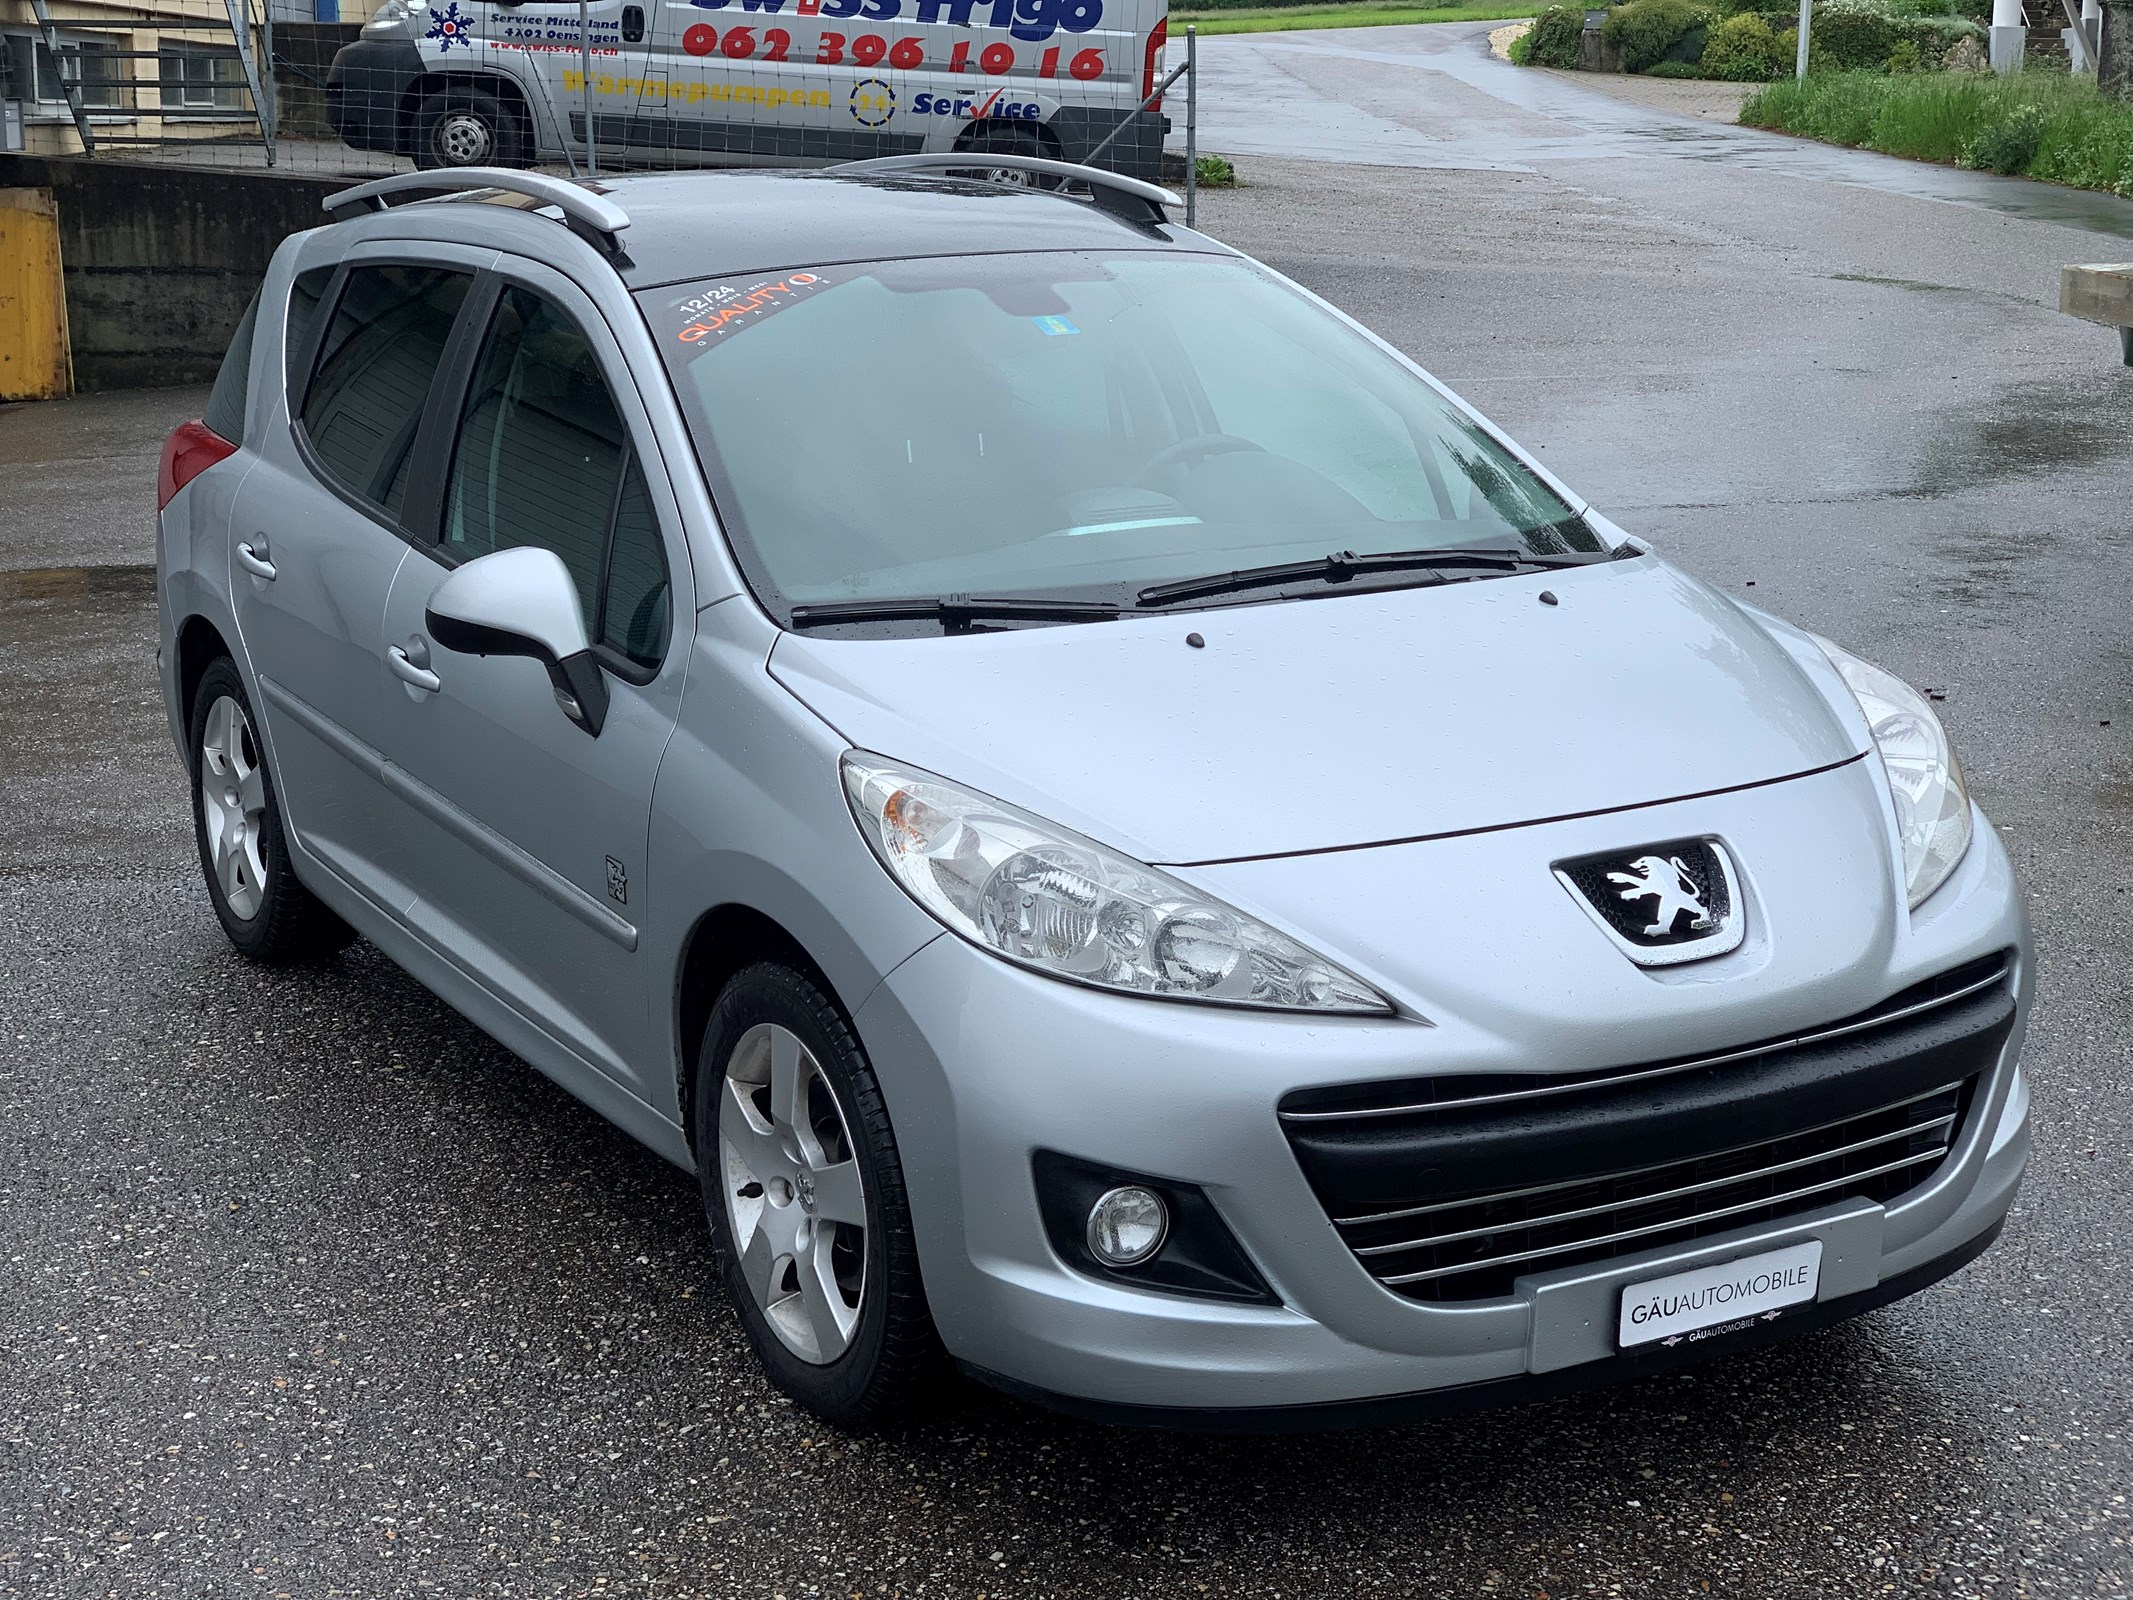 estate Peugeot 207 SW 1.6 16V Lion Edition Automatic